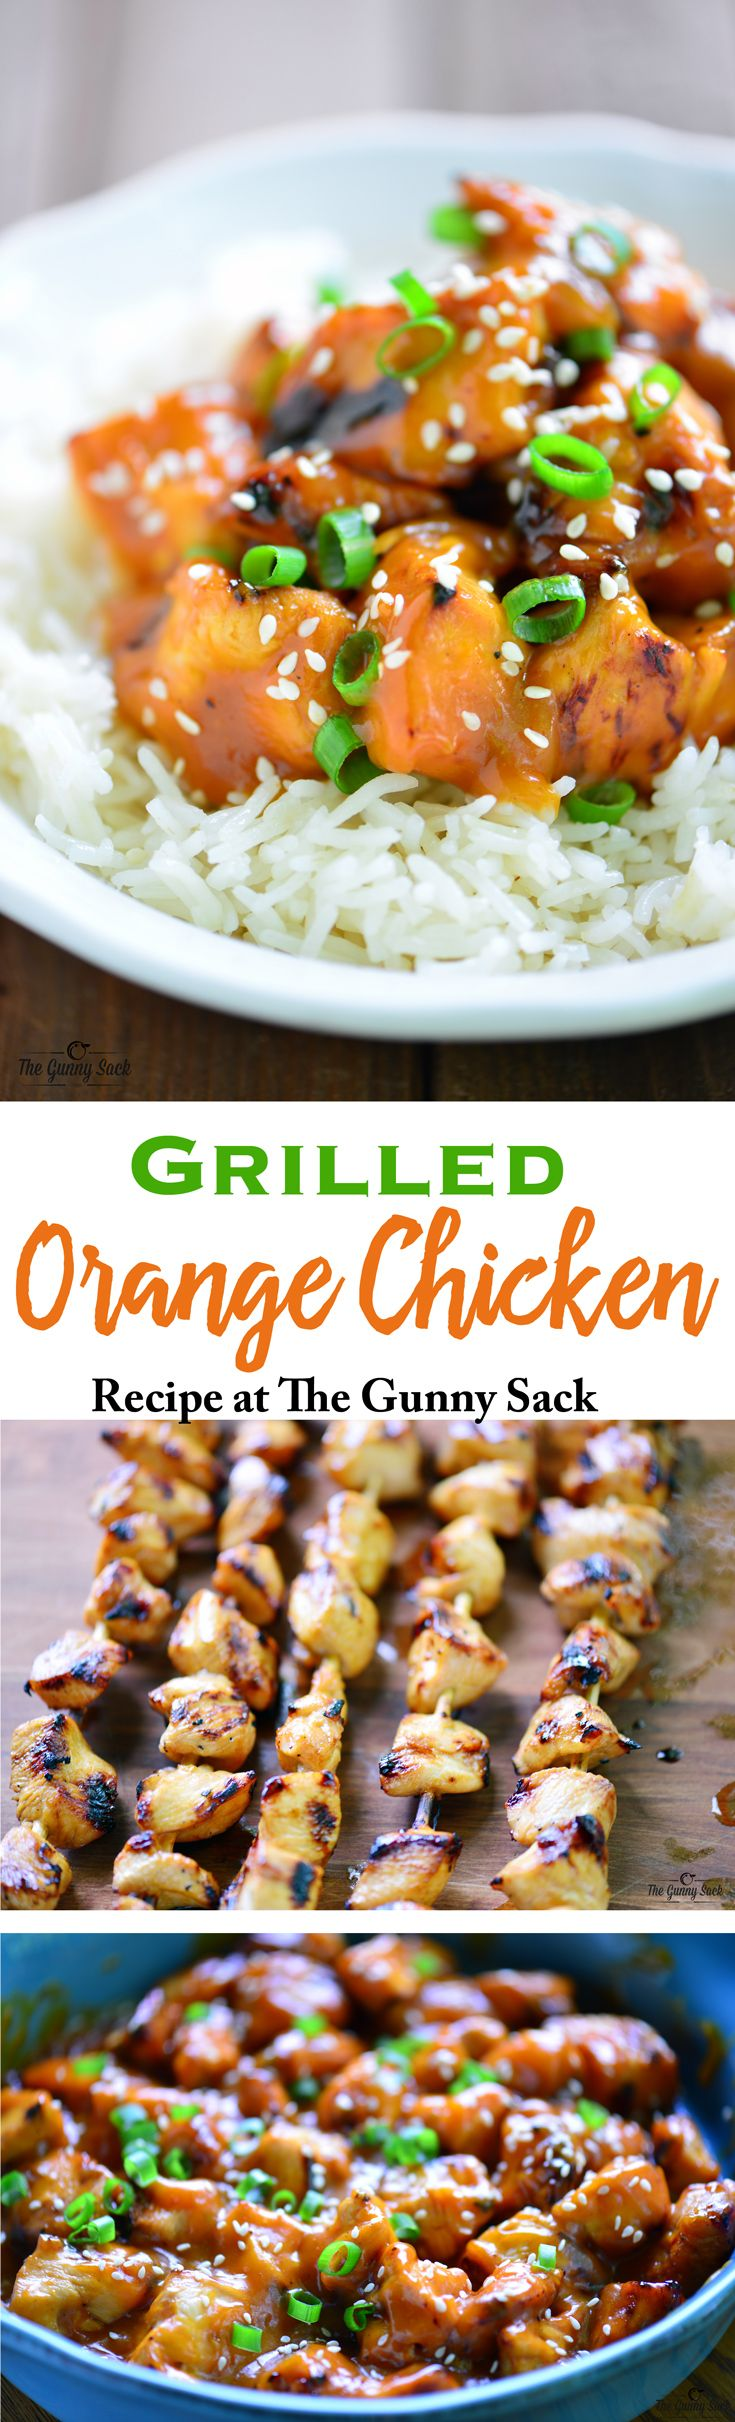 This Grilled Orange Chicken recipe has a delicious orange flavor! It can be served over rice or leave the orange chicken on the skewers to serve as kabobs.